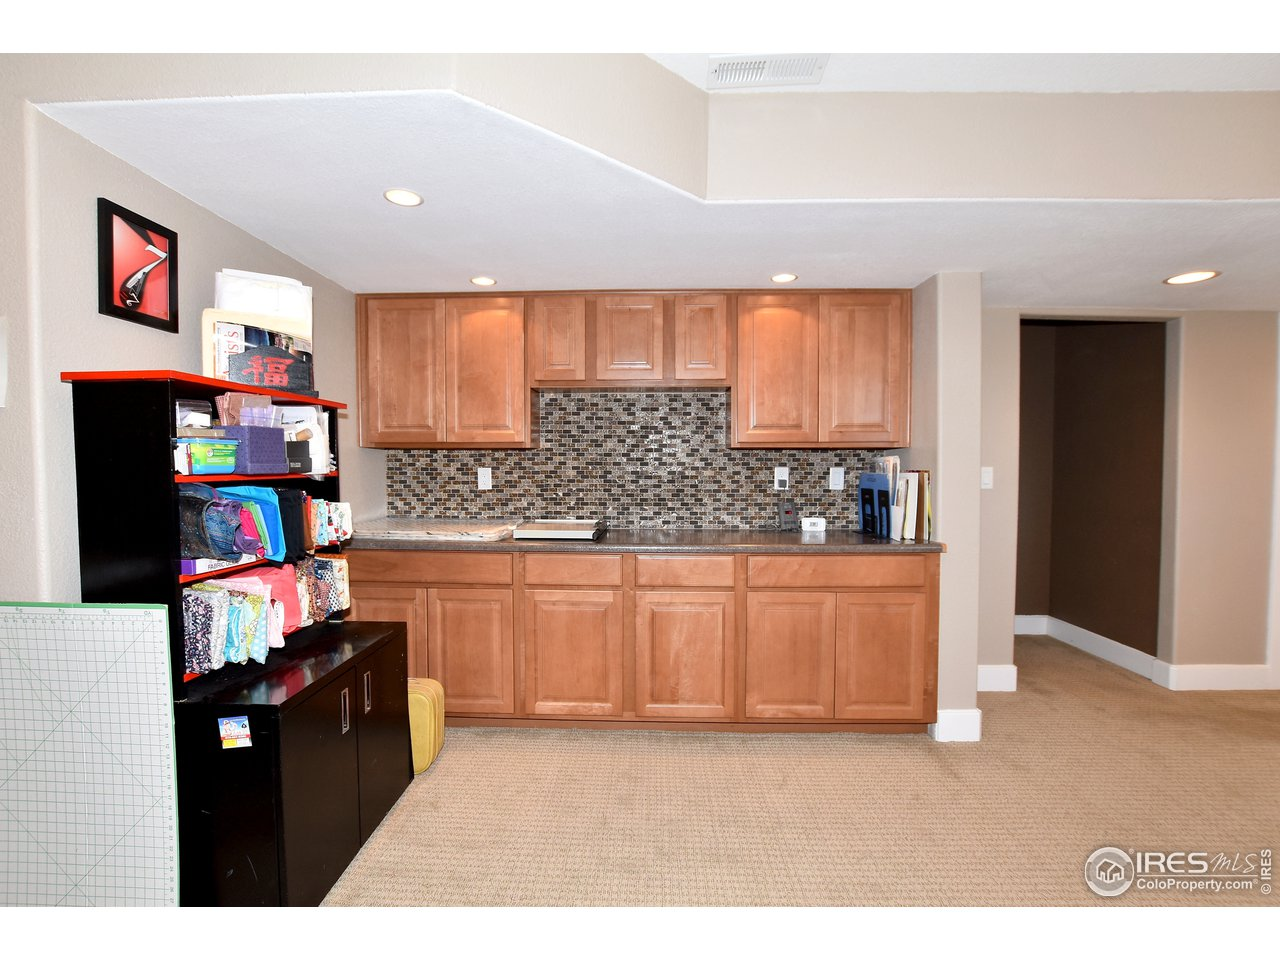 The family room also features built in cabinets and countertop